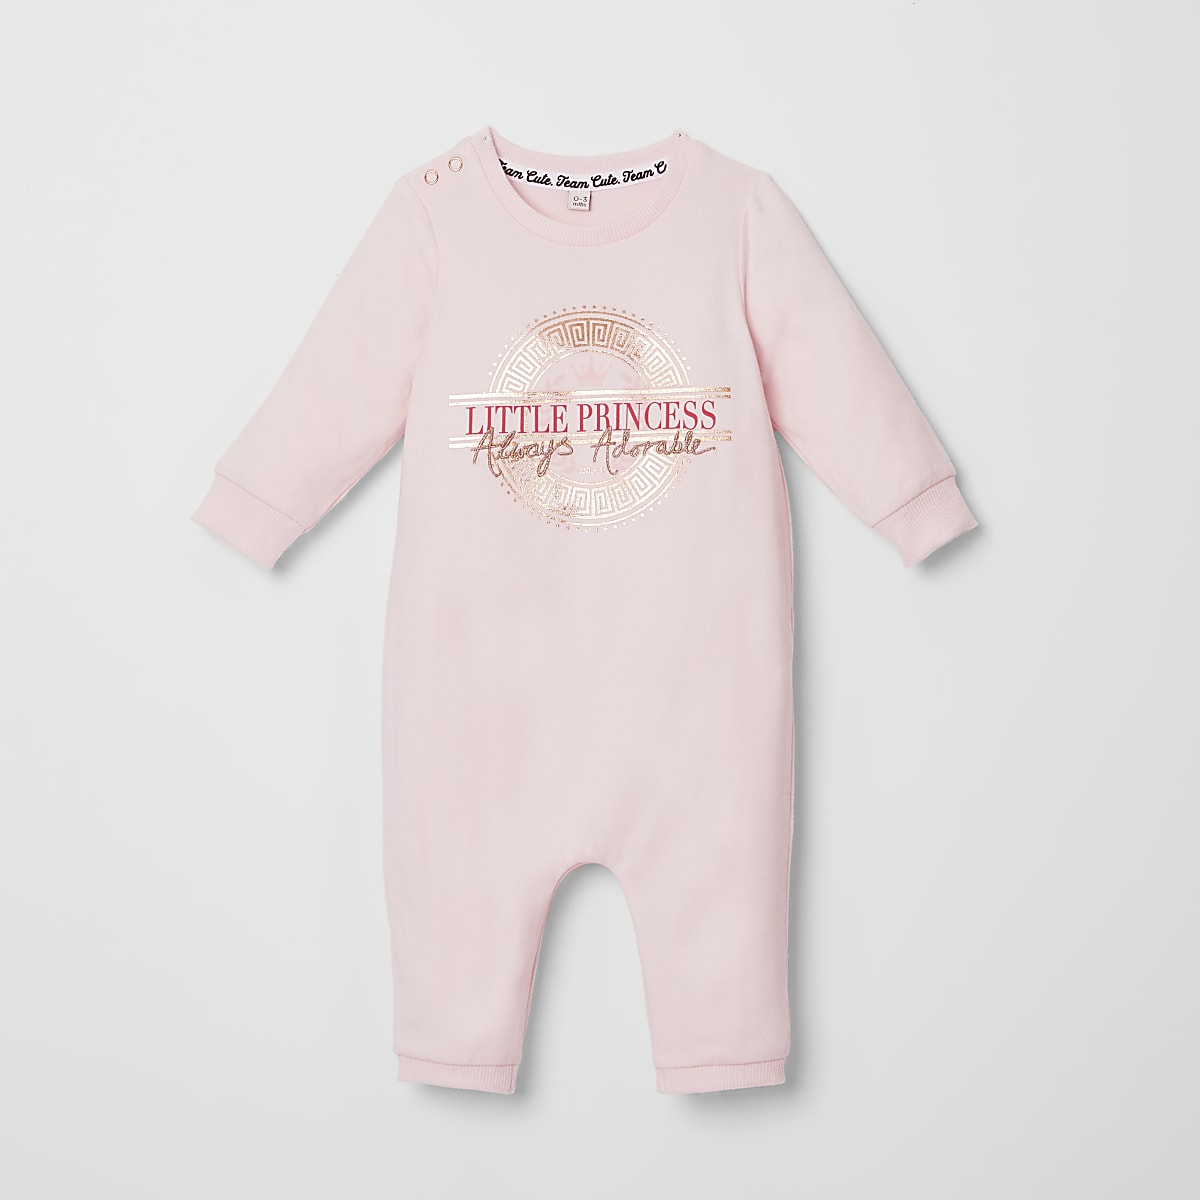 Baby pink 'Little princess' baby grow